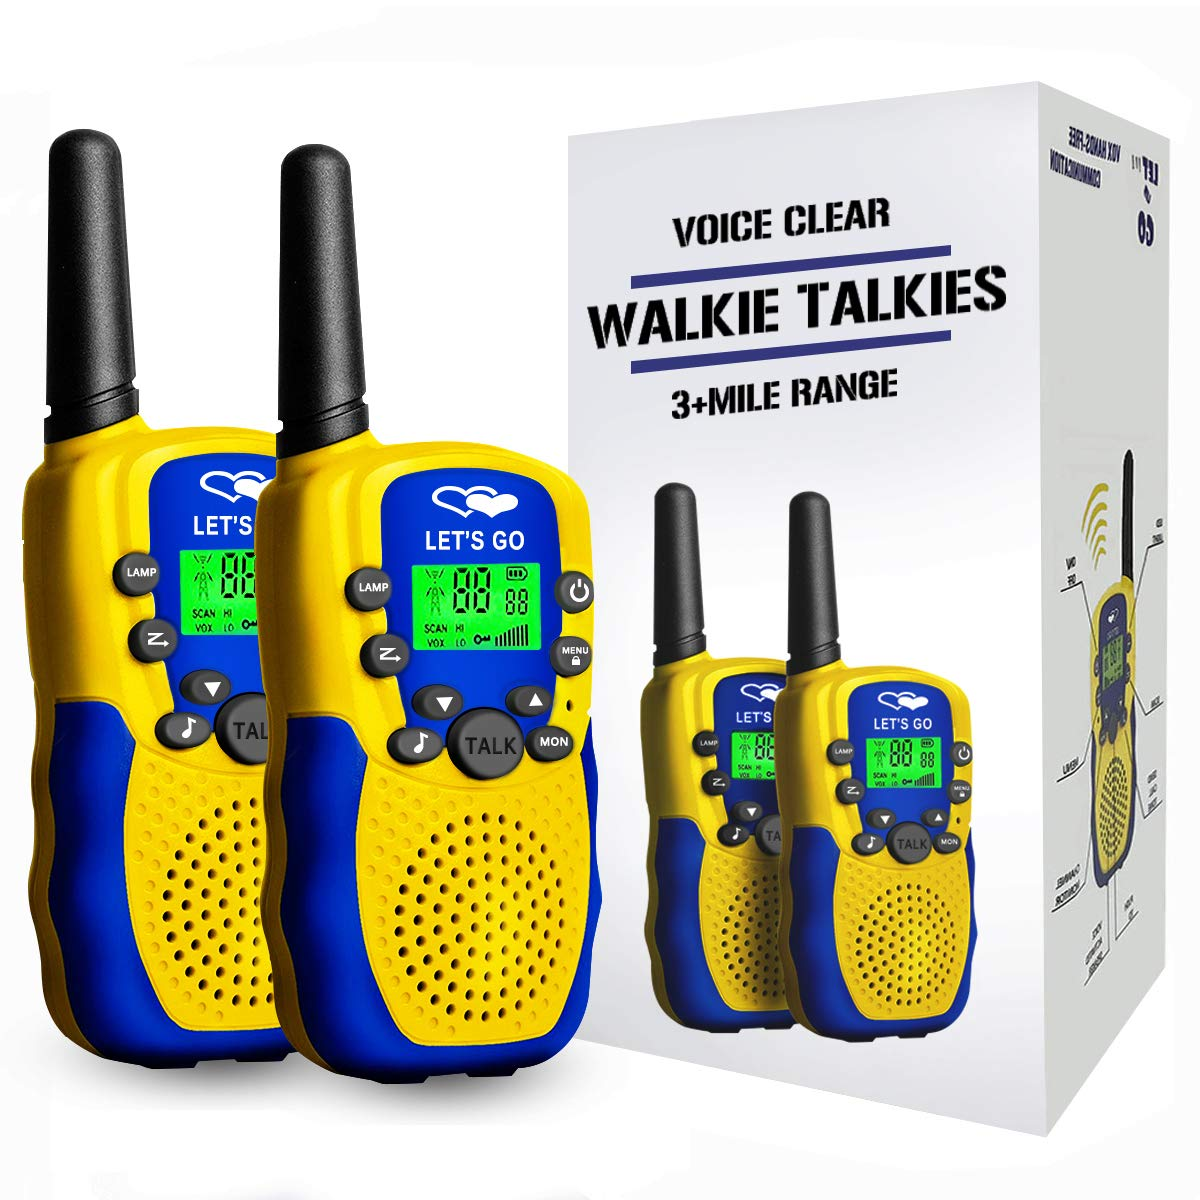 Walkie Talkies for Kids Boys Girls, Ouwen Long Range Walkie Talkies for Kids Popular Hottest Outdoor Toys for 3-12 Year Old Boys Girls Kids Toys Age 3-12 New Gift Yellow Blue Owusdd09 by Tesoky (Image #1)